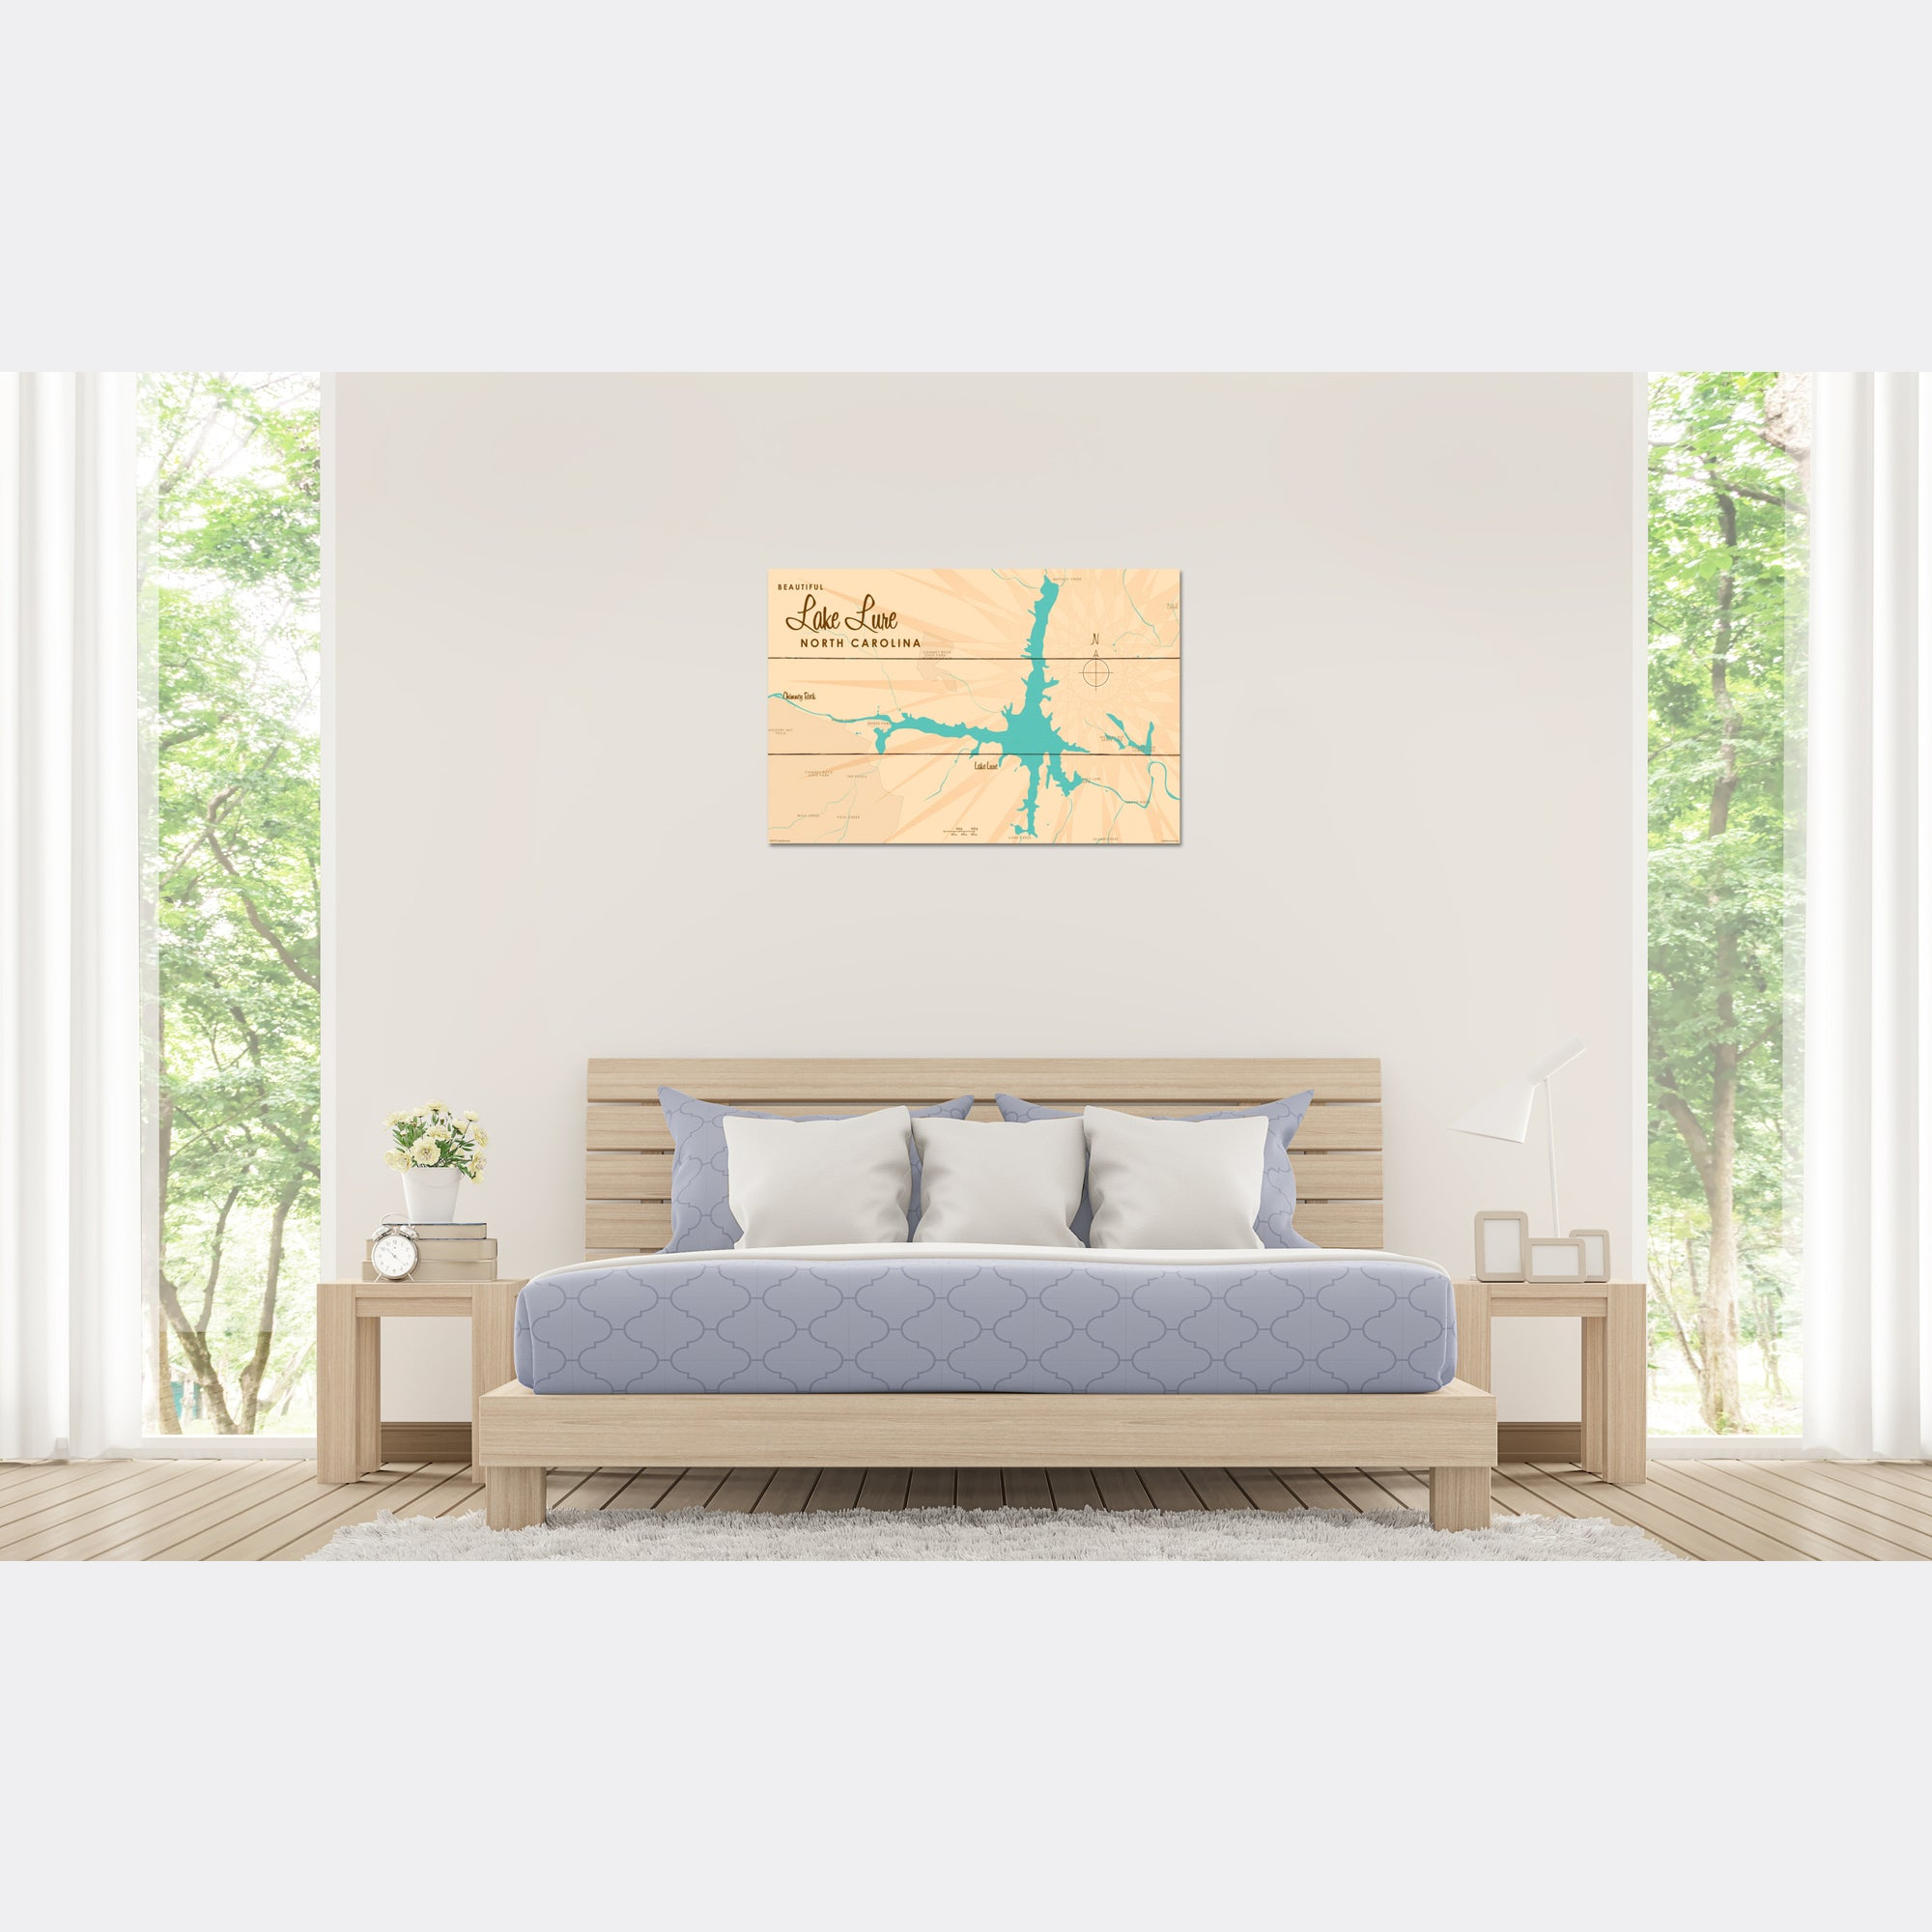 Lake Lure North Carolina, Wood Sign Map Art